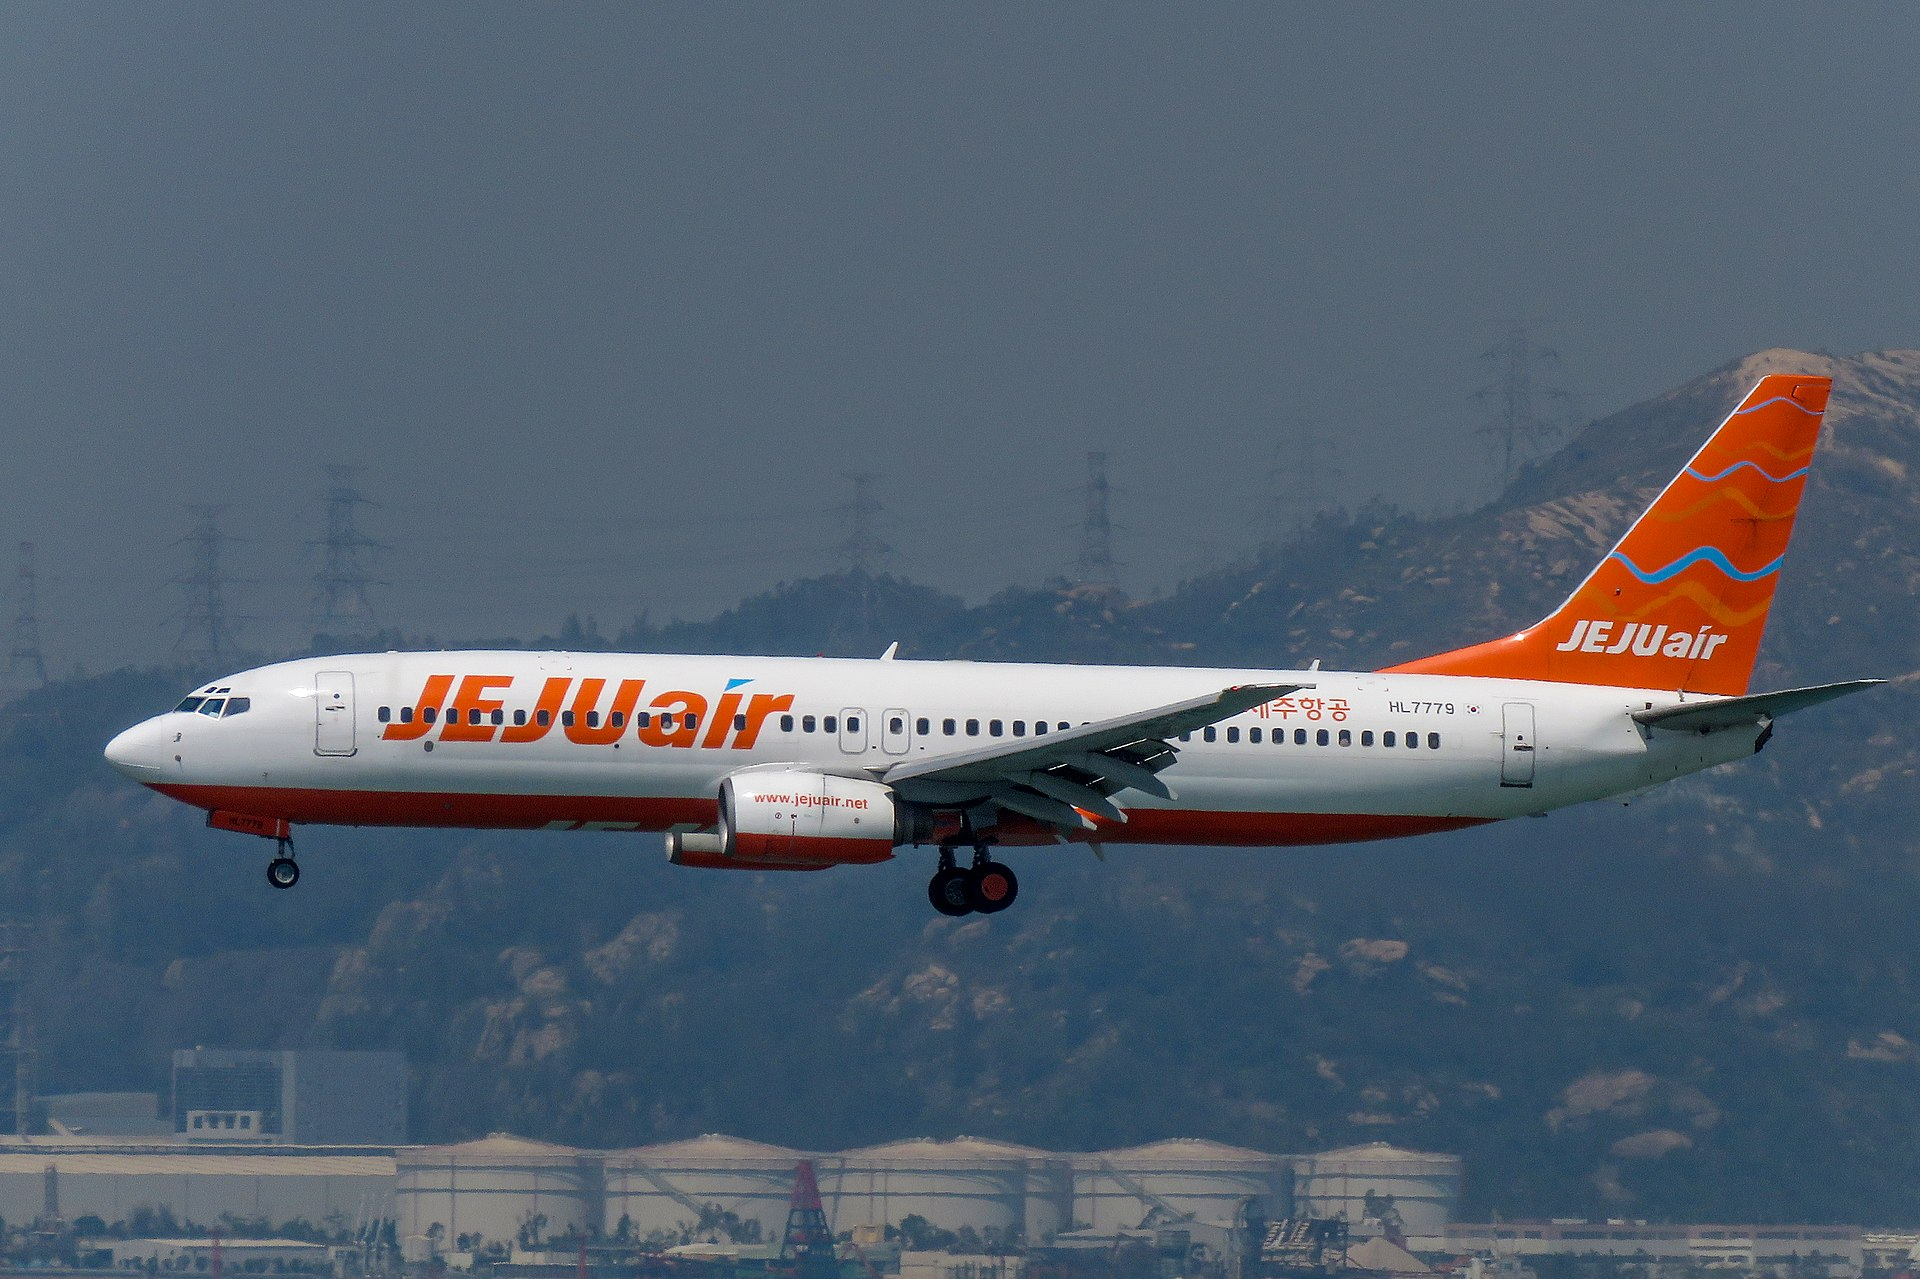 World's largest airline by market cap: Jeju Air